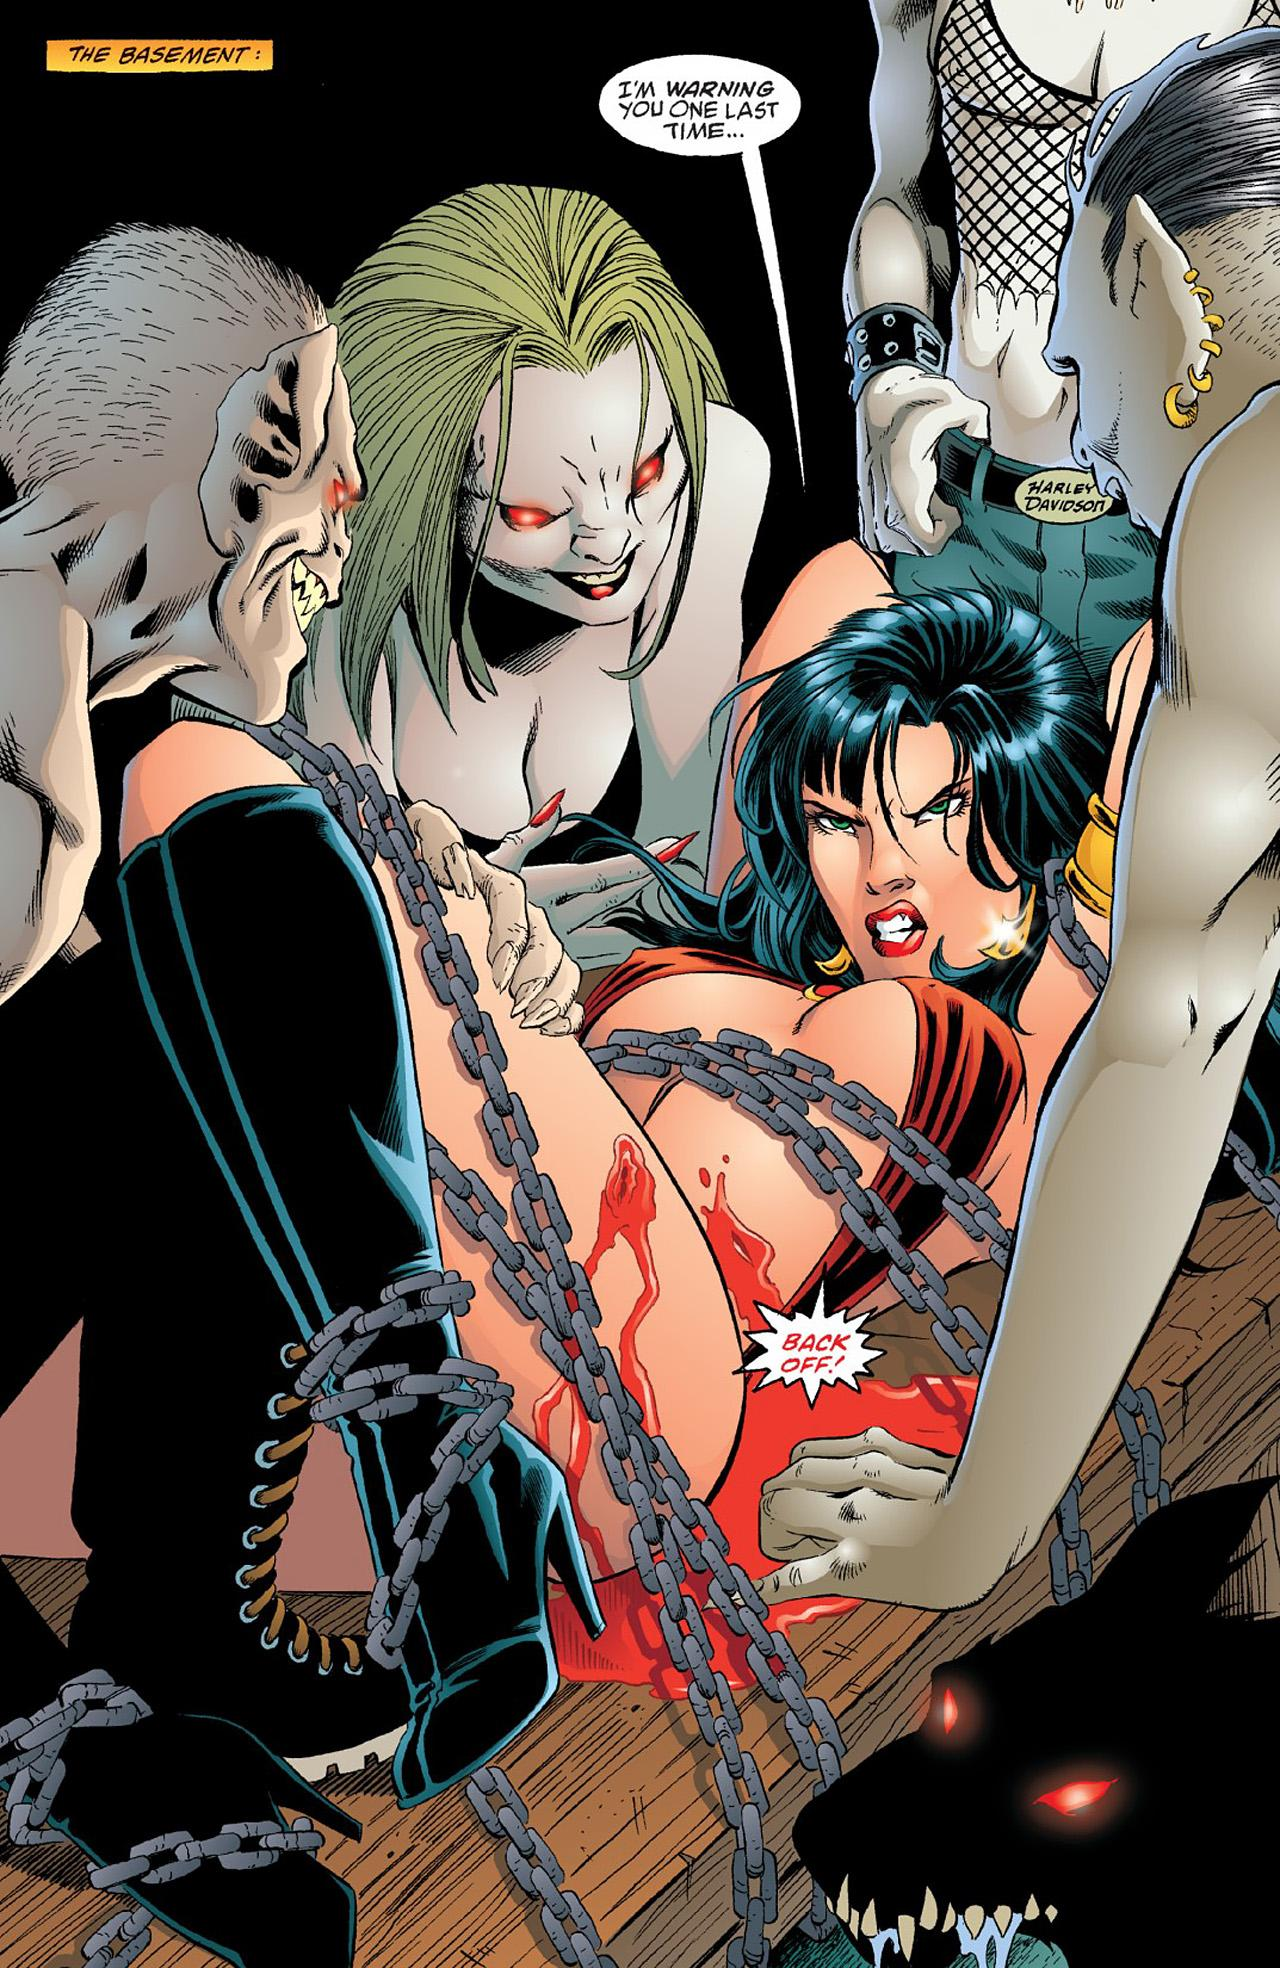 Vampirella Masters Vol 1 Morrison and Millar review